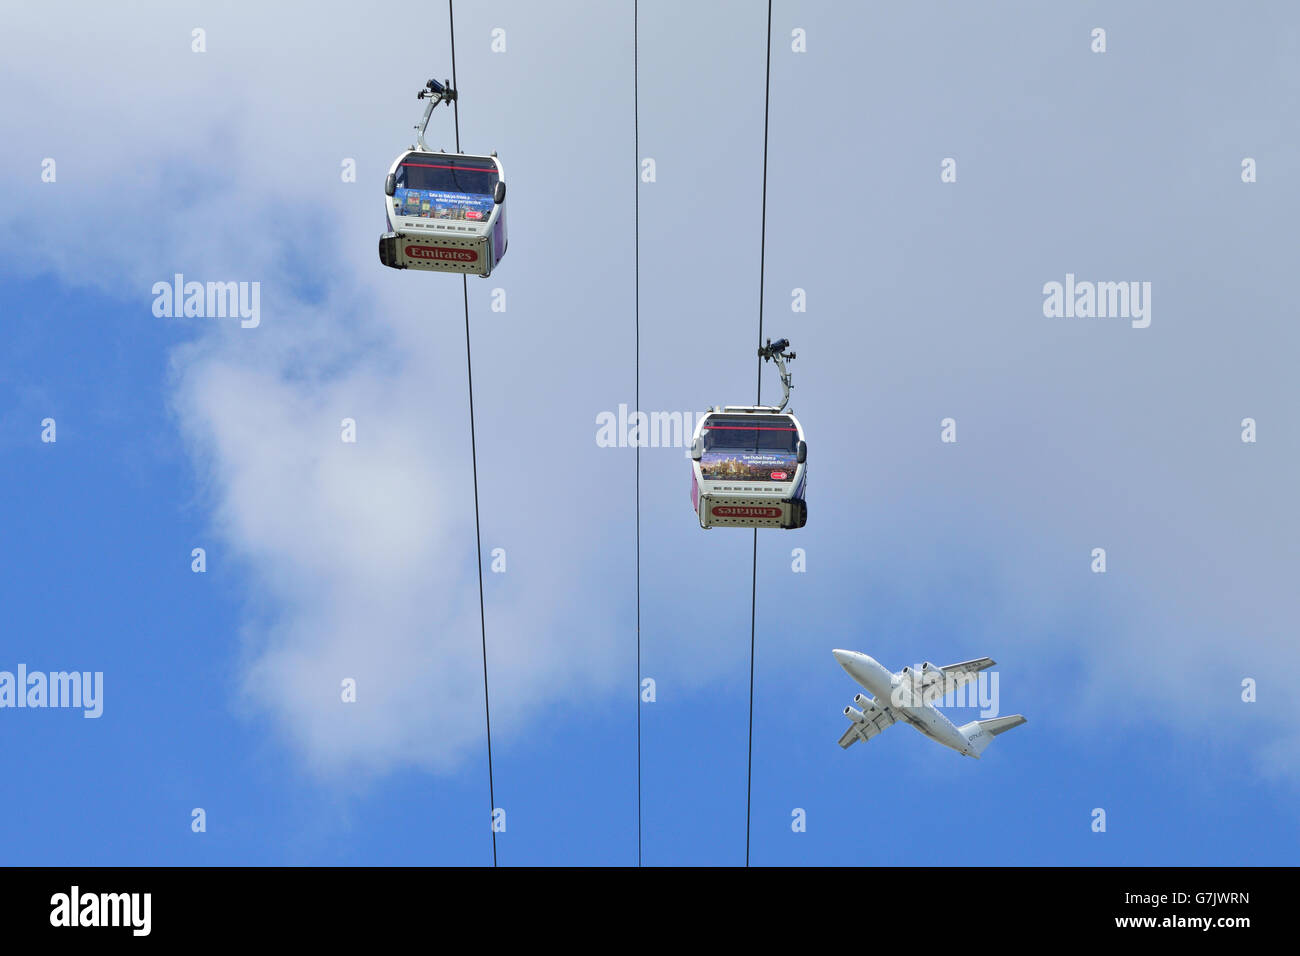 A plane takes off from London City Airport and passes over the TfL Emirates Air Line cable car at  London's - Stock Image